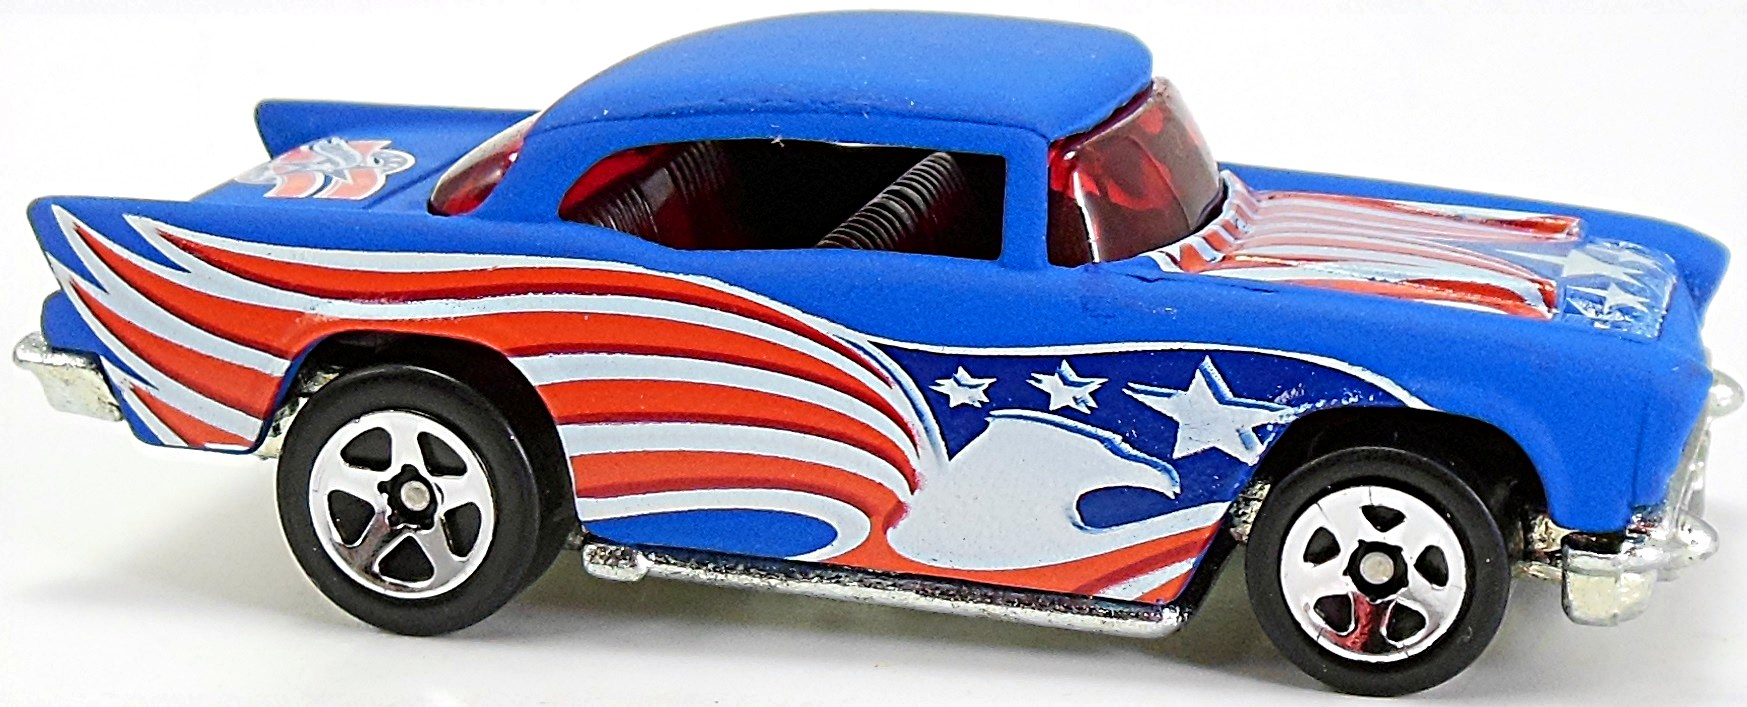 hight resolution of w3 flat blue as w silver painted base sp5 star spangled 125 factory sealed set 2004 5 10 x mf white flat black roof metal base